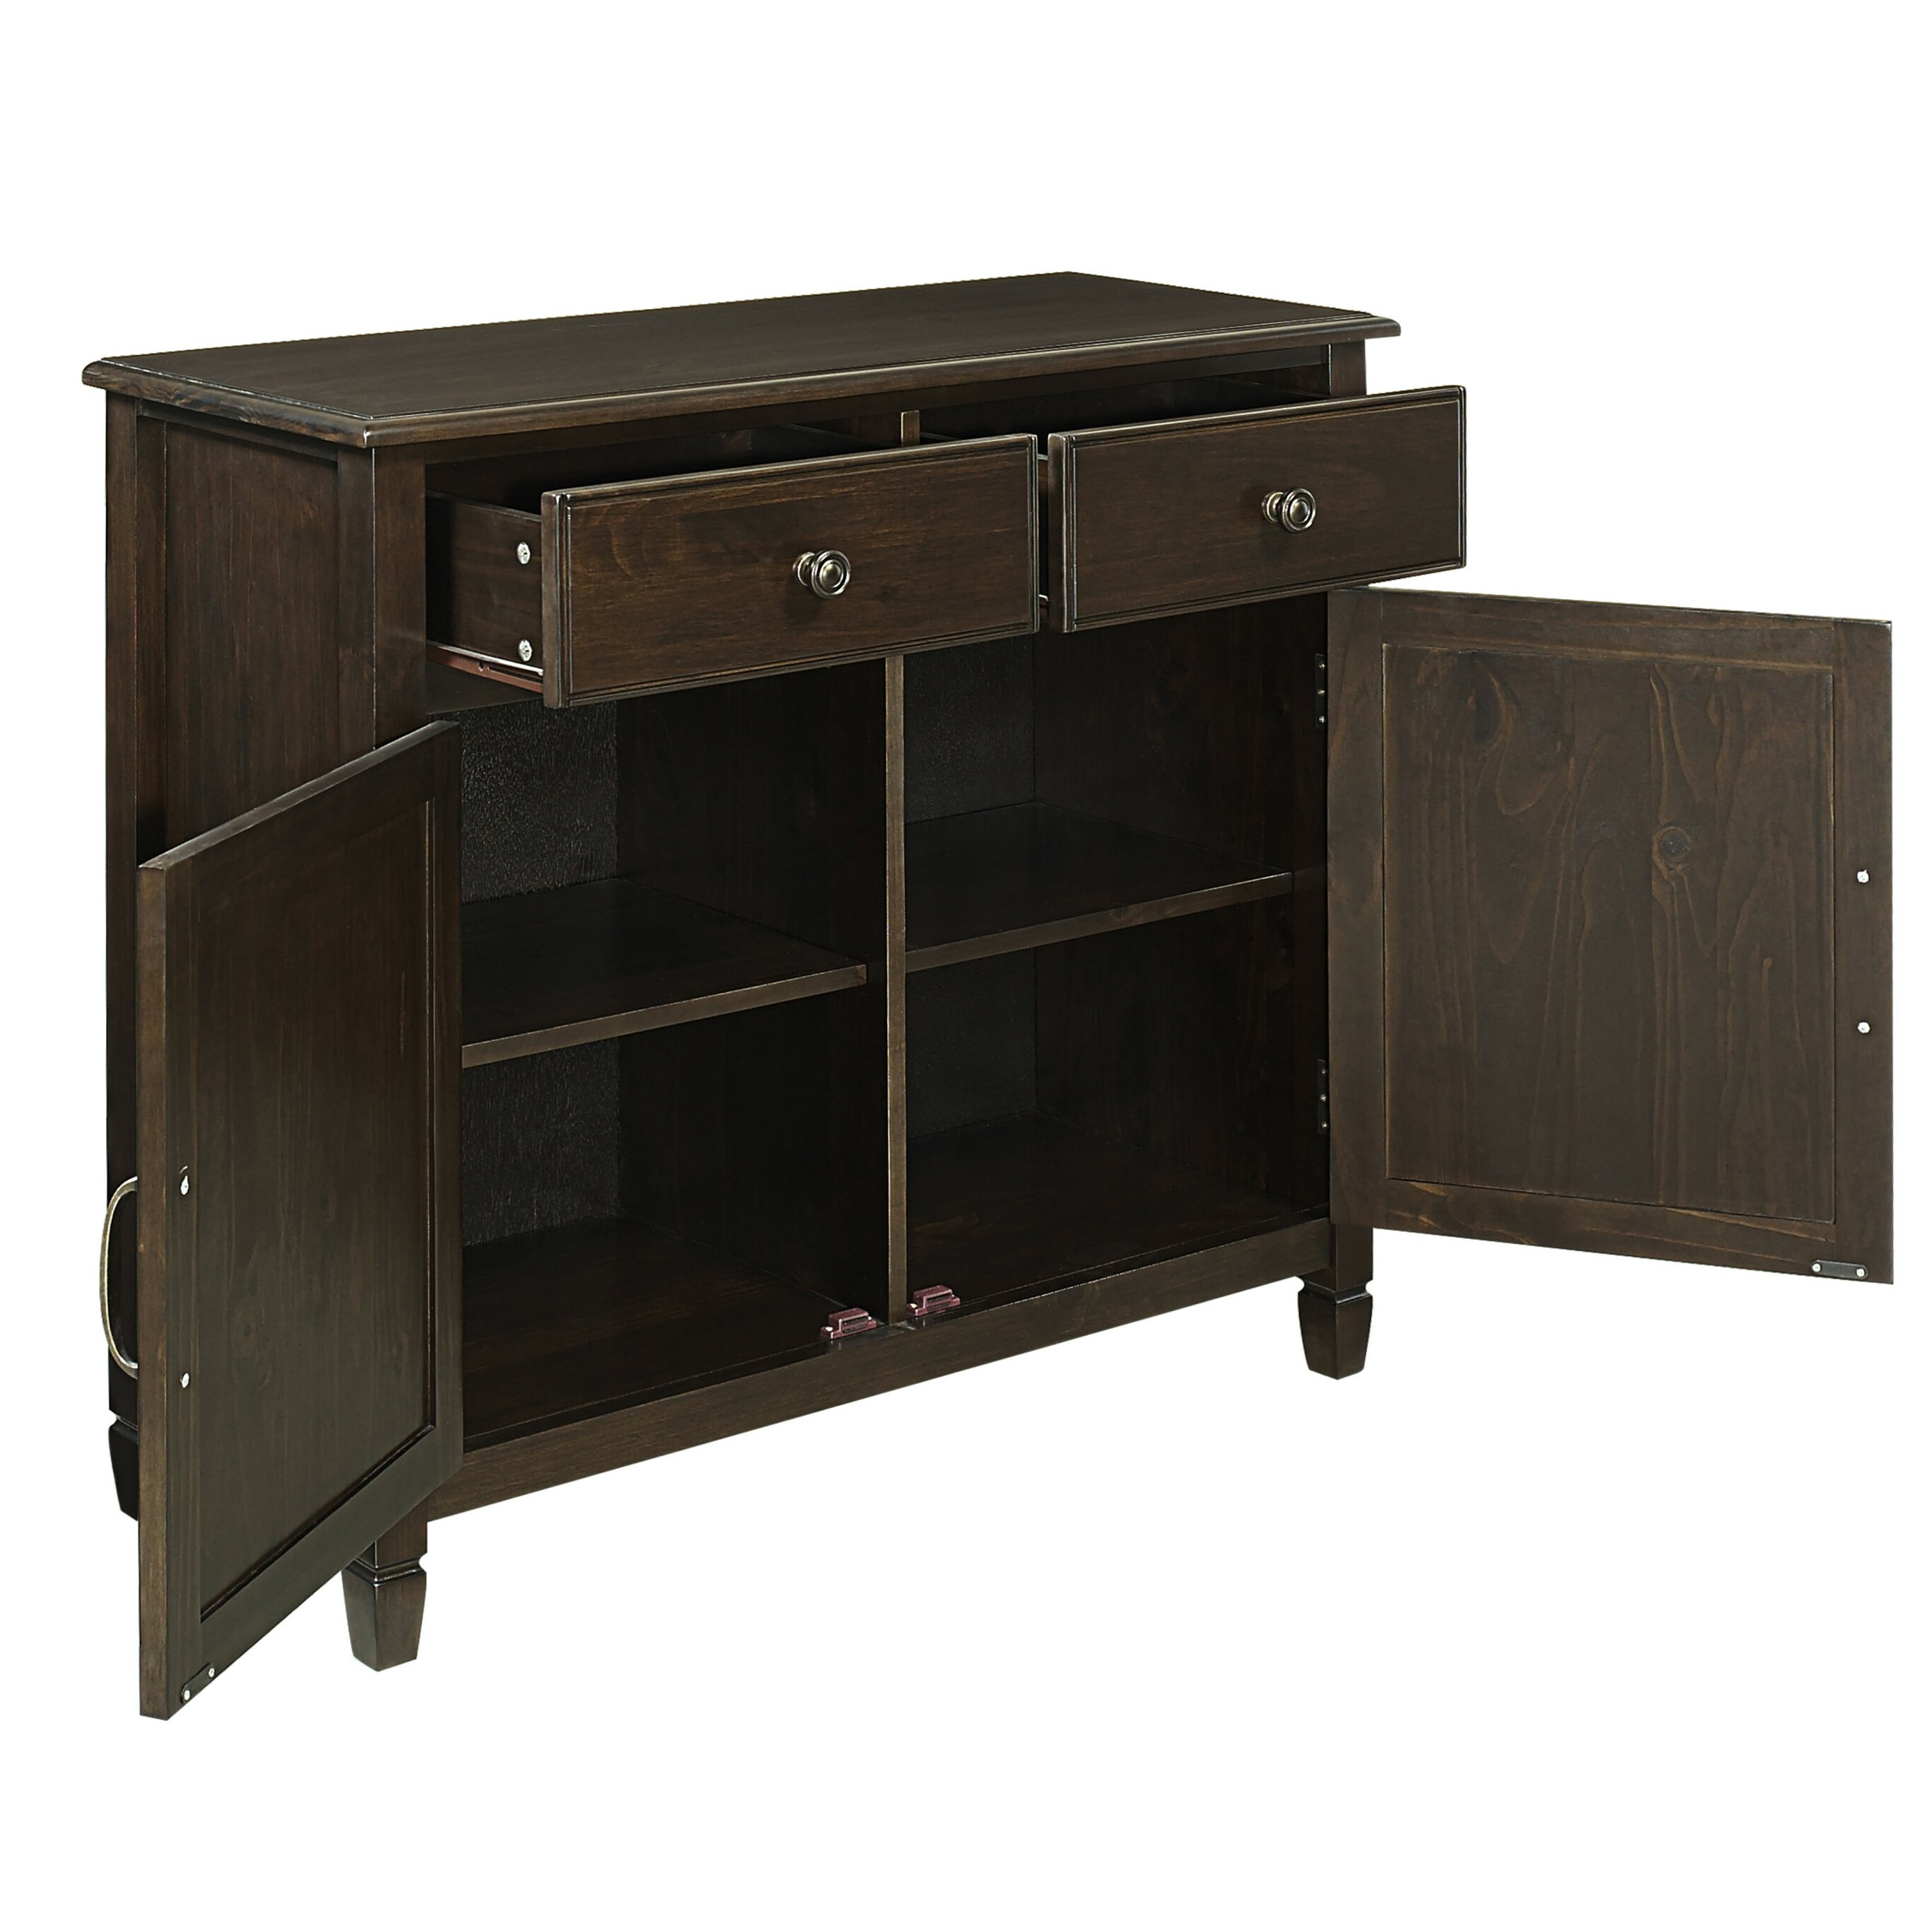 Foyer Cabinet With Drawers : Simpli home connaught drawers and door entryway